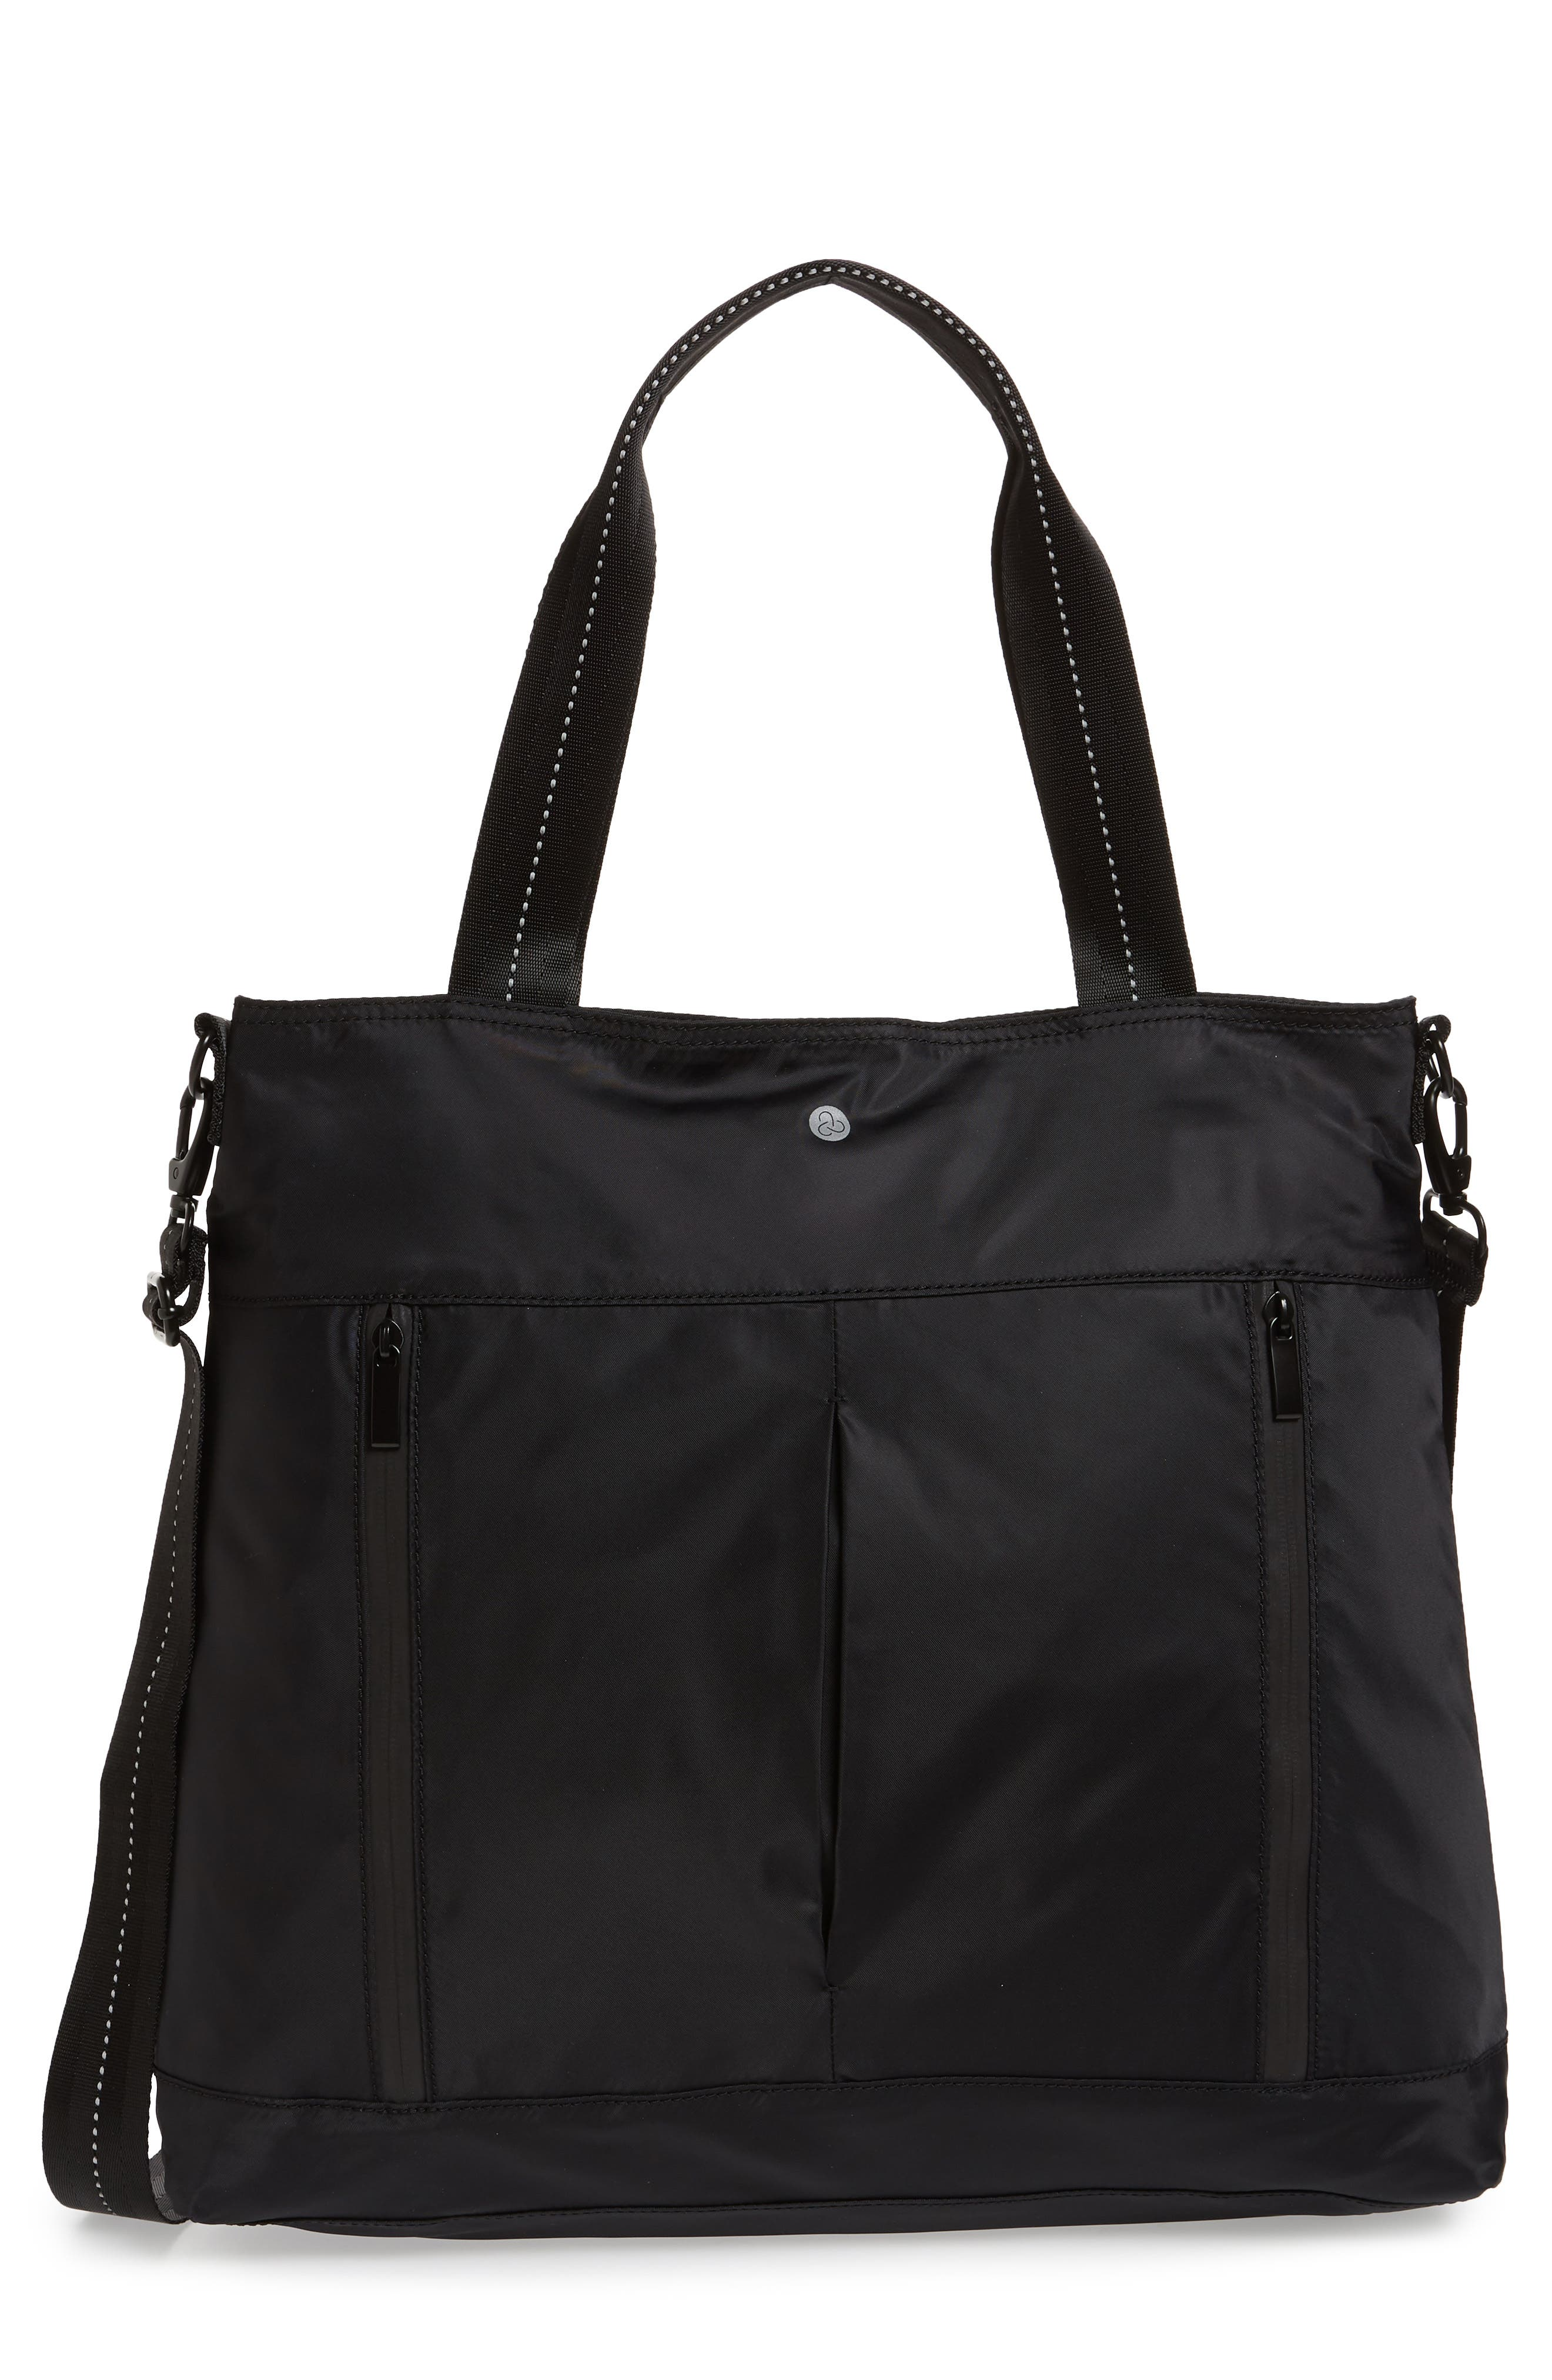 Reflective Nylon Tote Bag,                         Main,                         color, Black